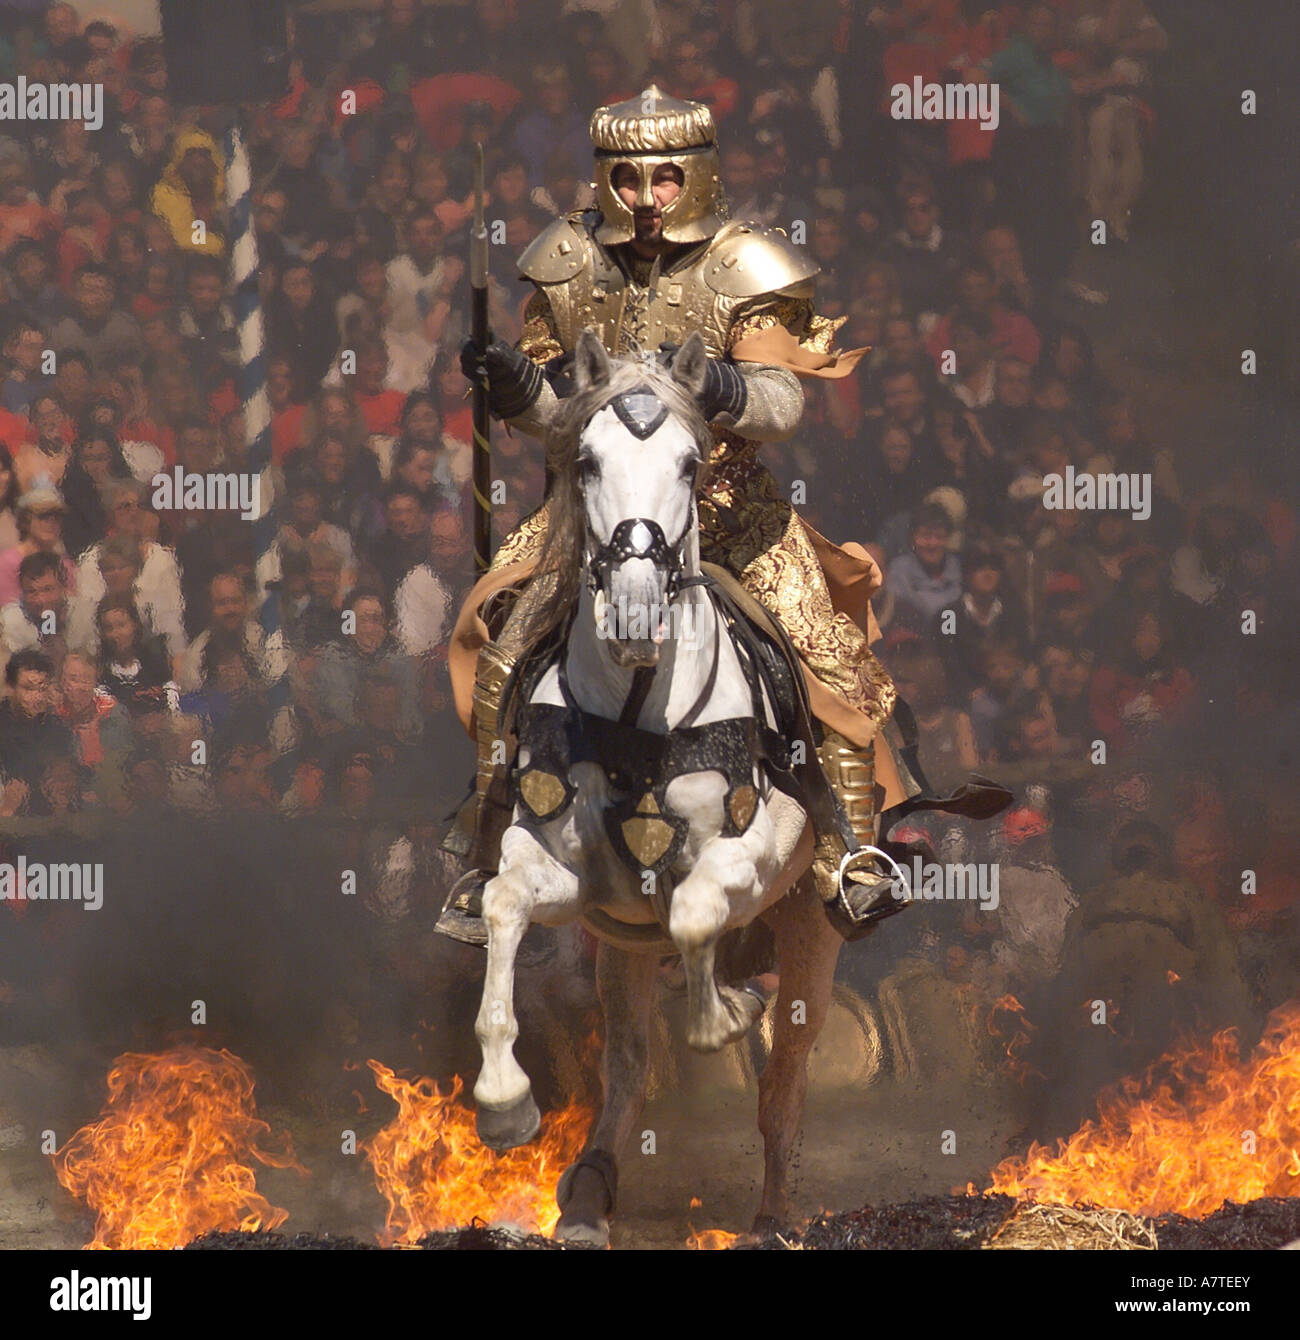 Knight in armour suit riding horse through fire, Bavaria, Germany - Stock Image